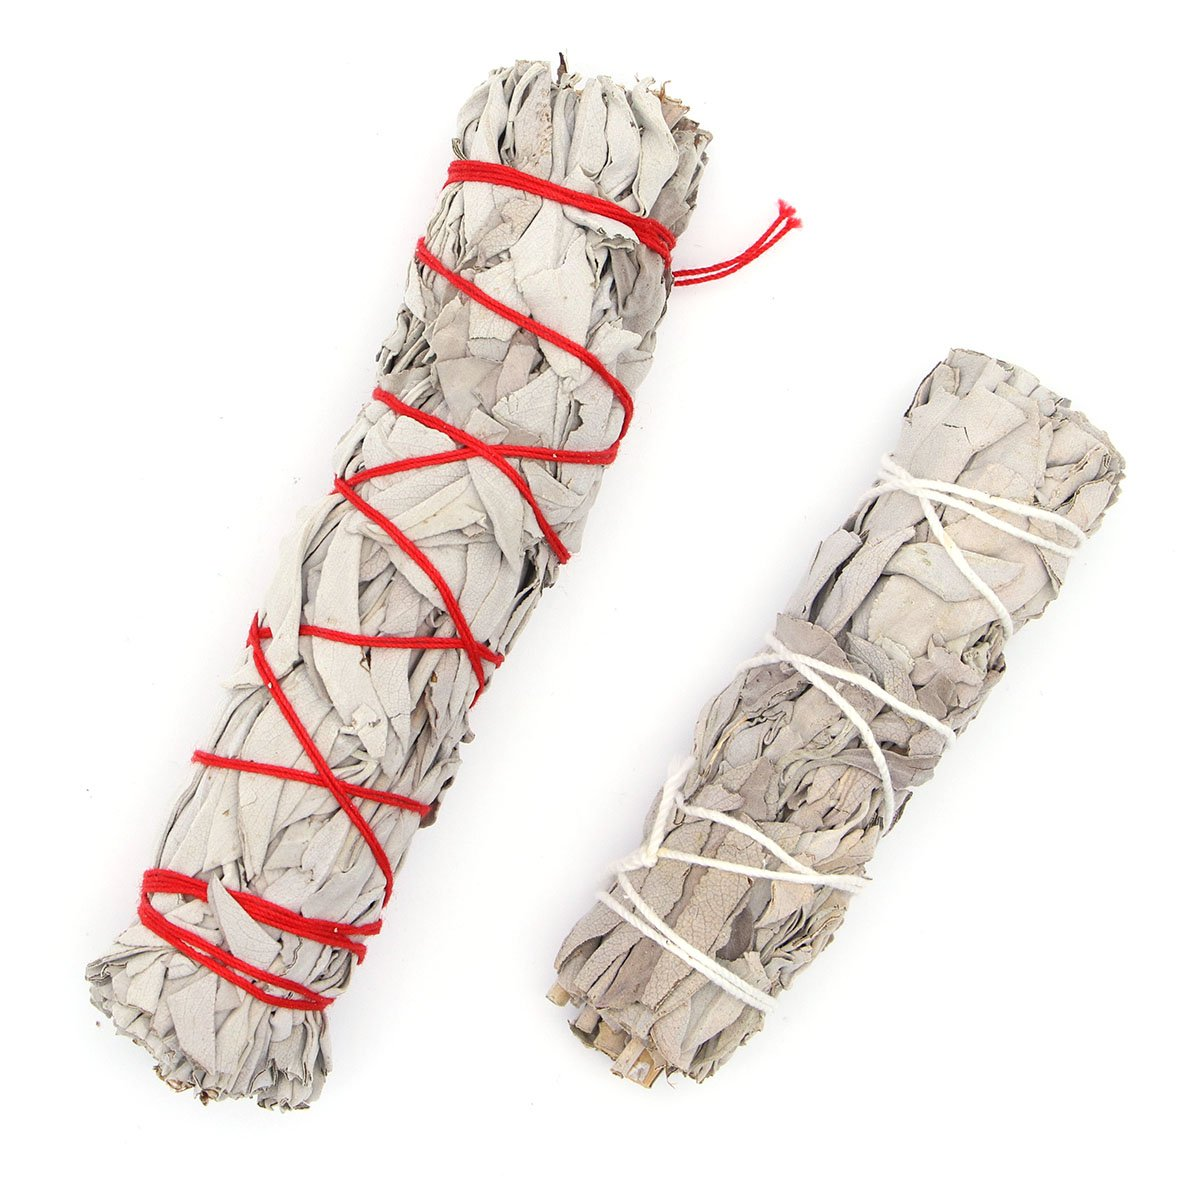 VORCOOL American California White Sage Smudge Stick (32g Single Bundle and Heavy Small Bundle)